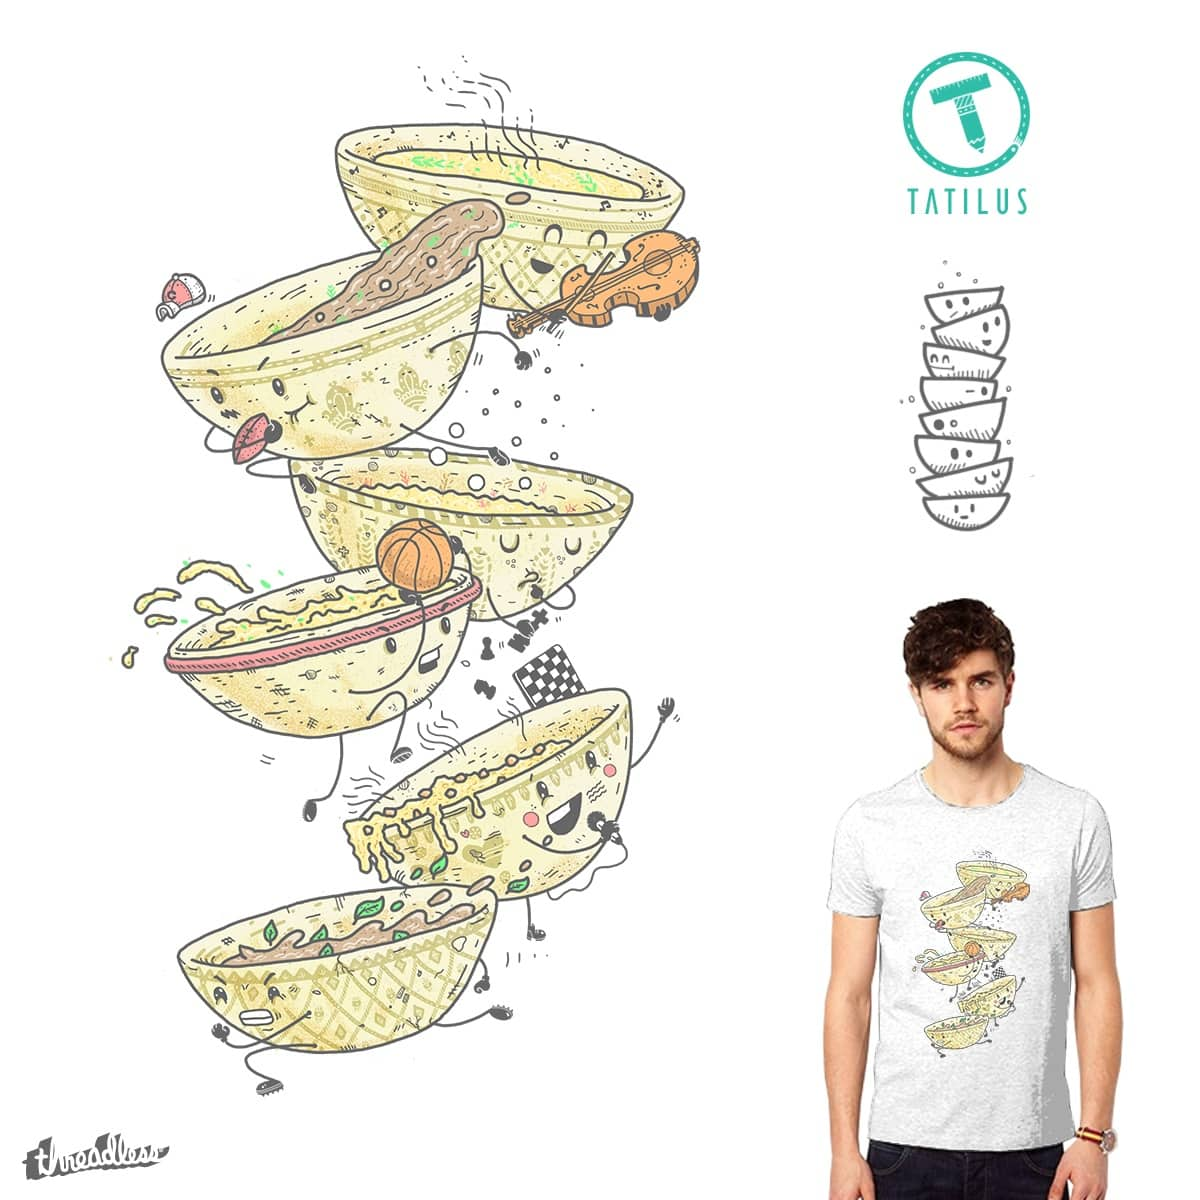 Extra-Curry-cular Activities by tatilus on Threadless